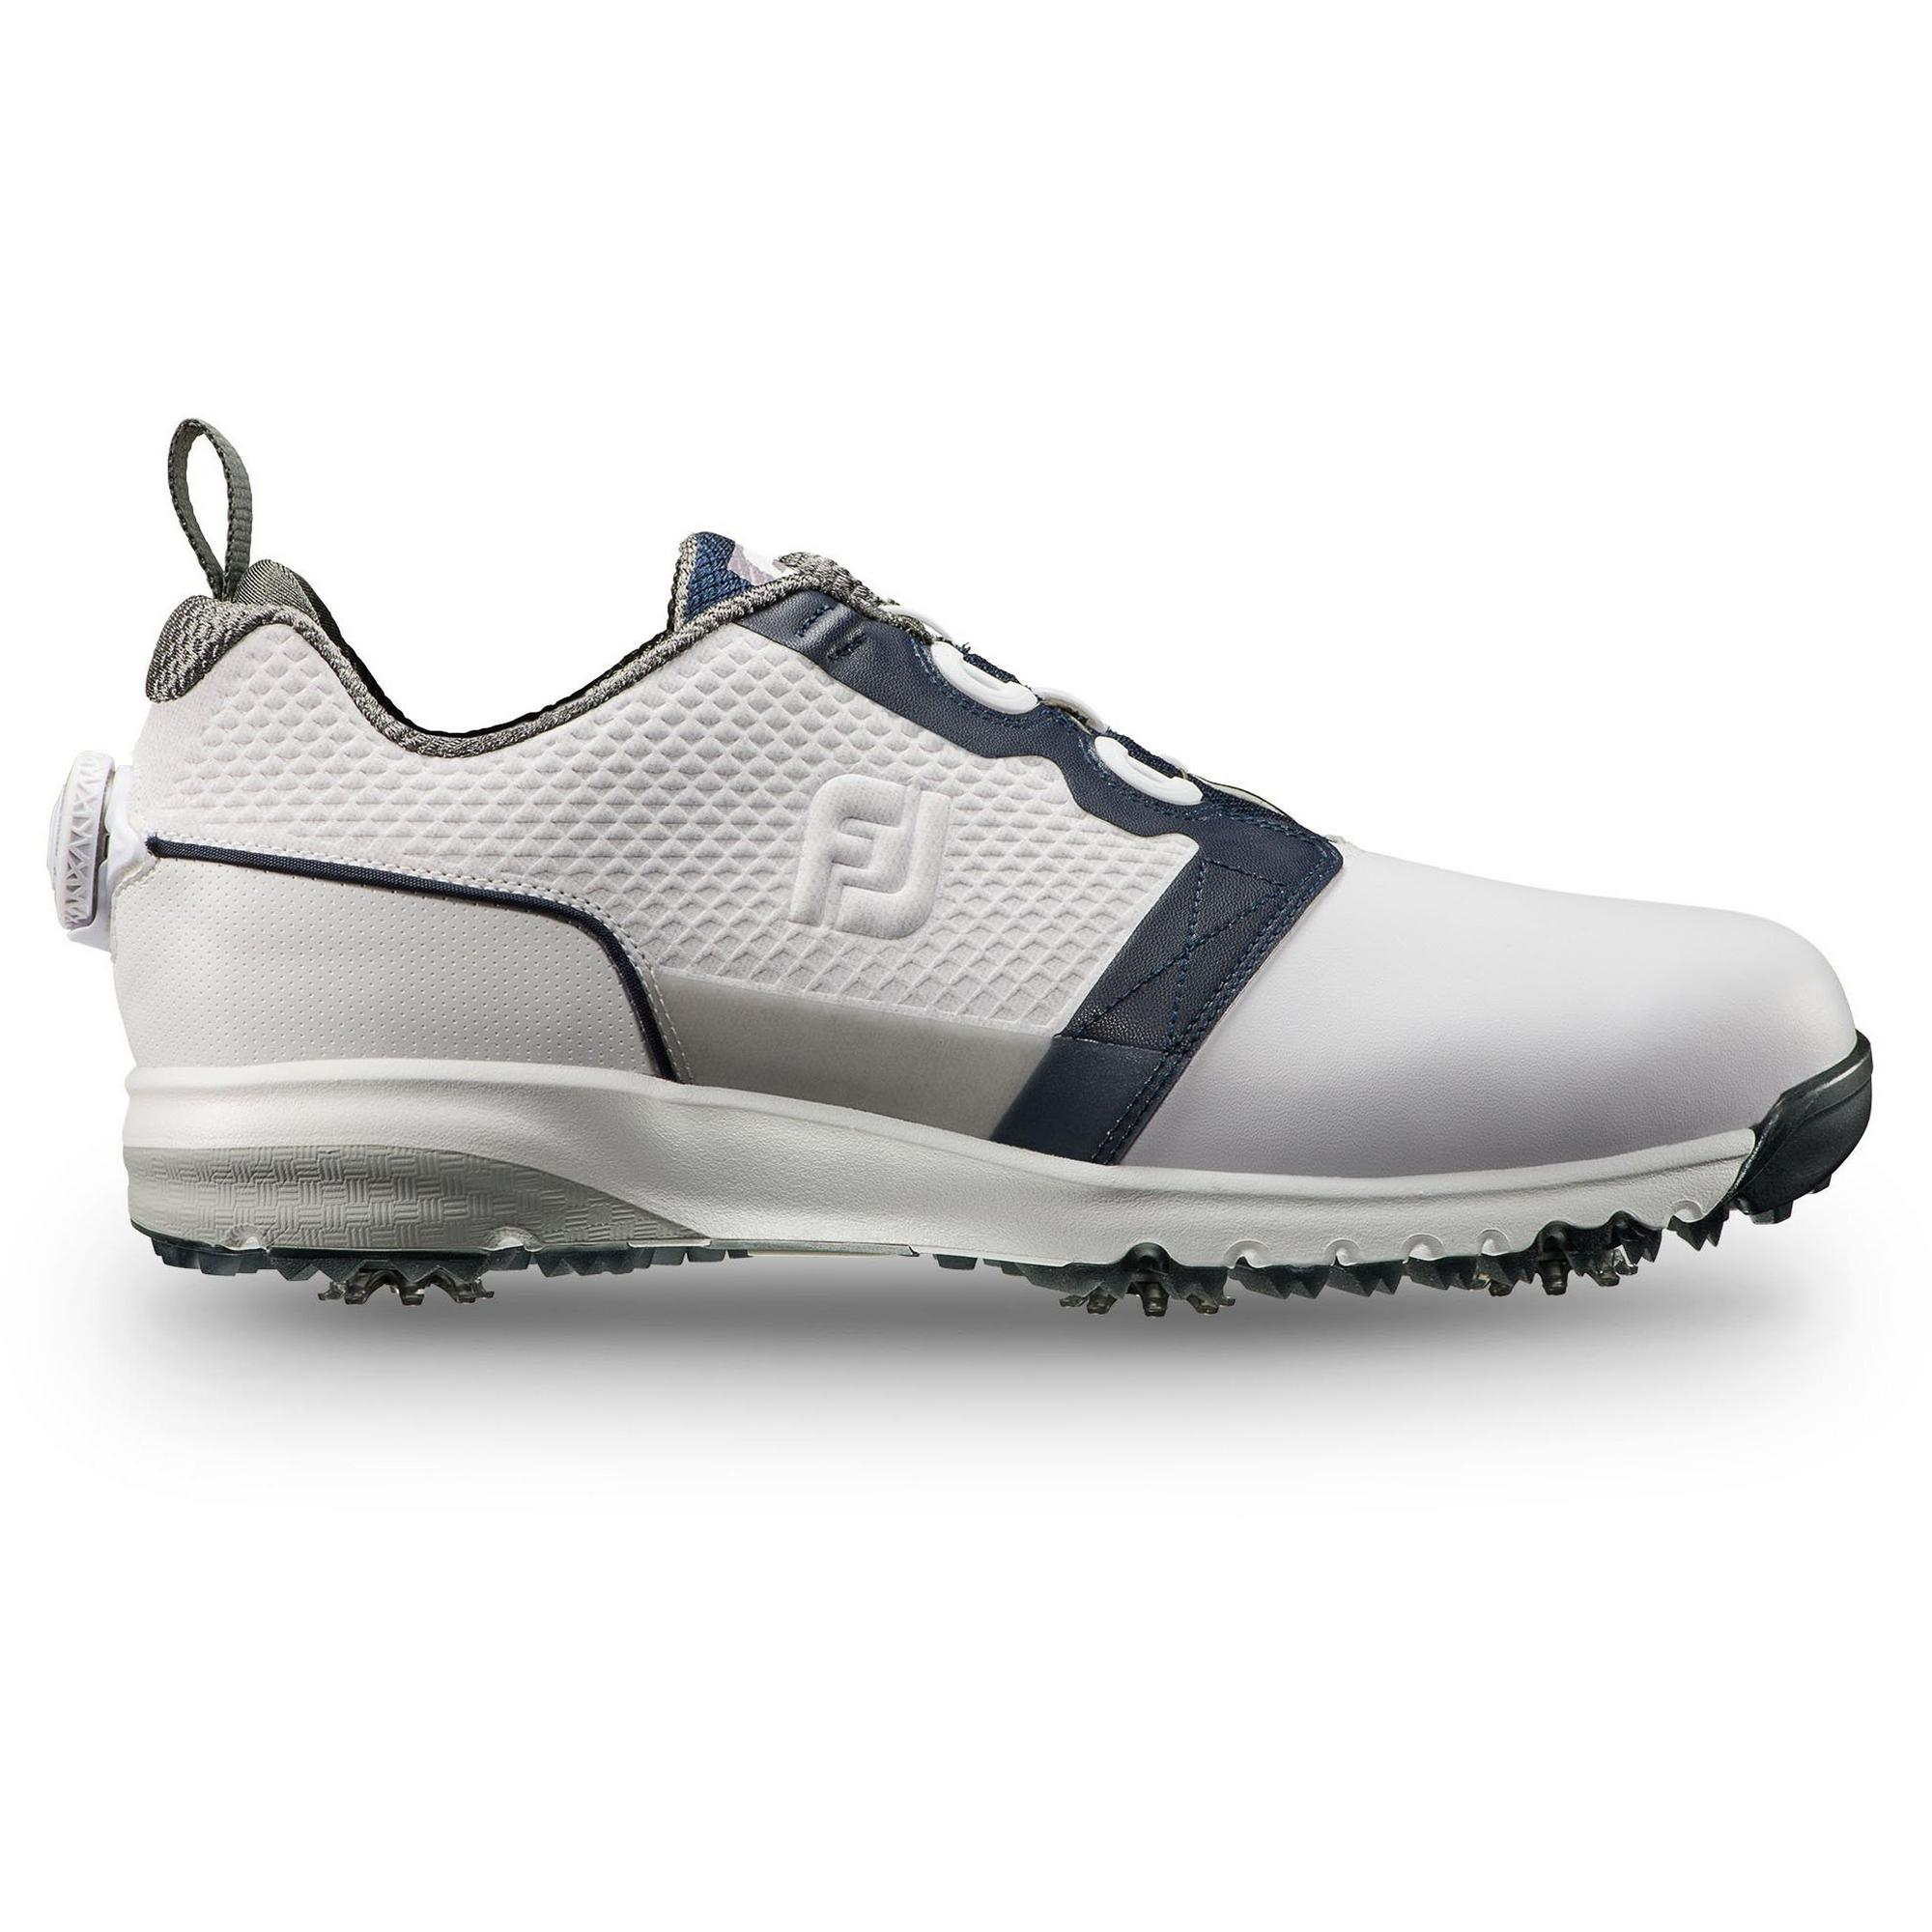 Mens ContourFIT Boa Spiked Golf Shoe - White/Navy